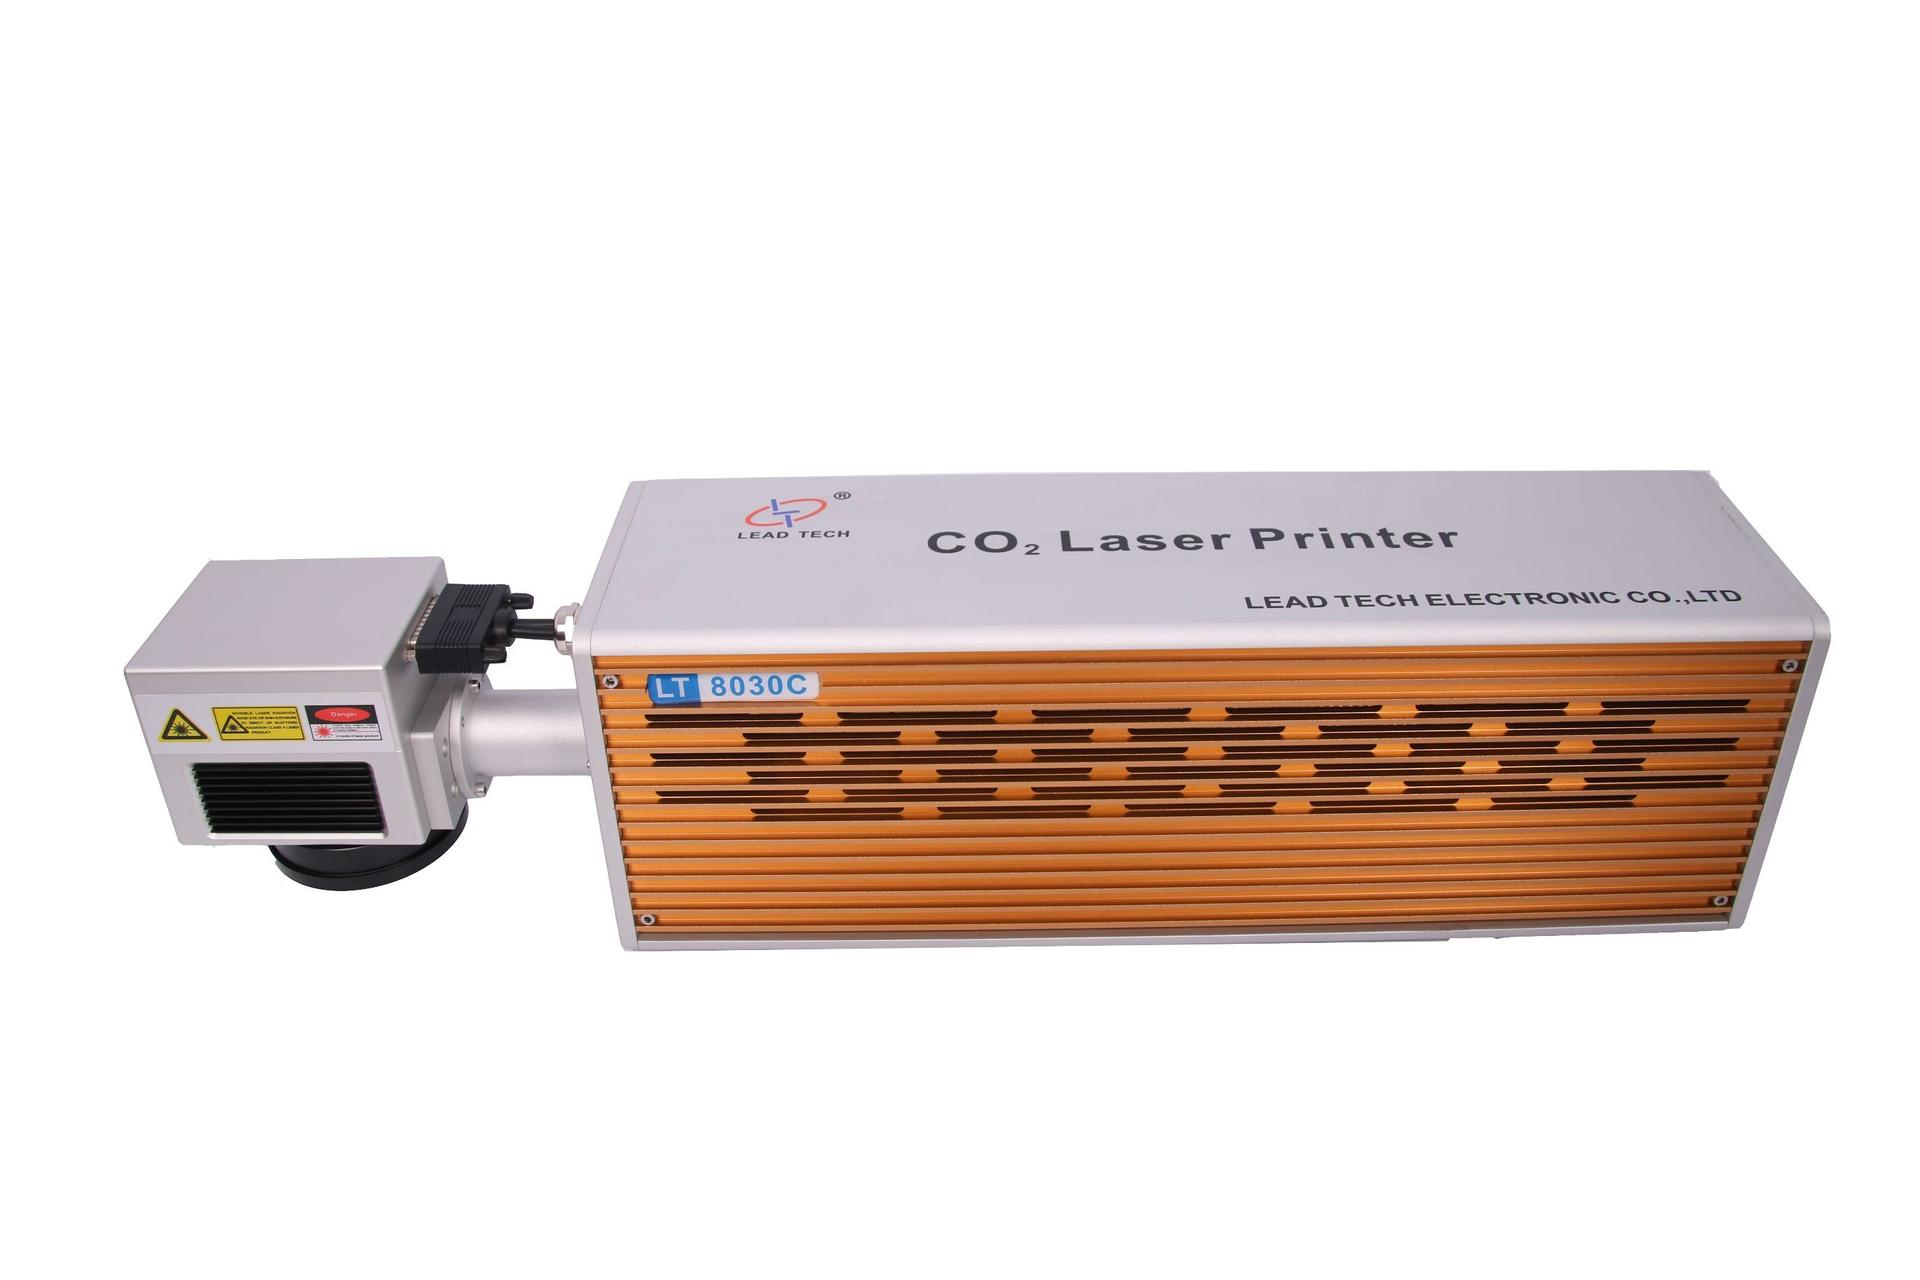 Lt8020c/Lt8030c CO2 Stainless Steel Digital Laser Printer